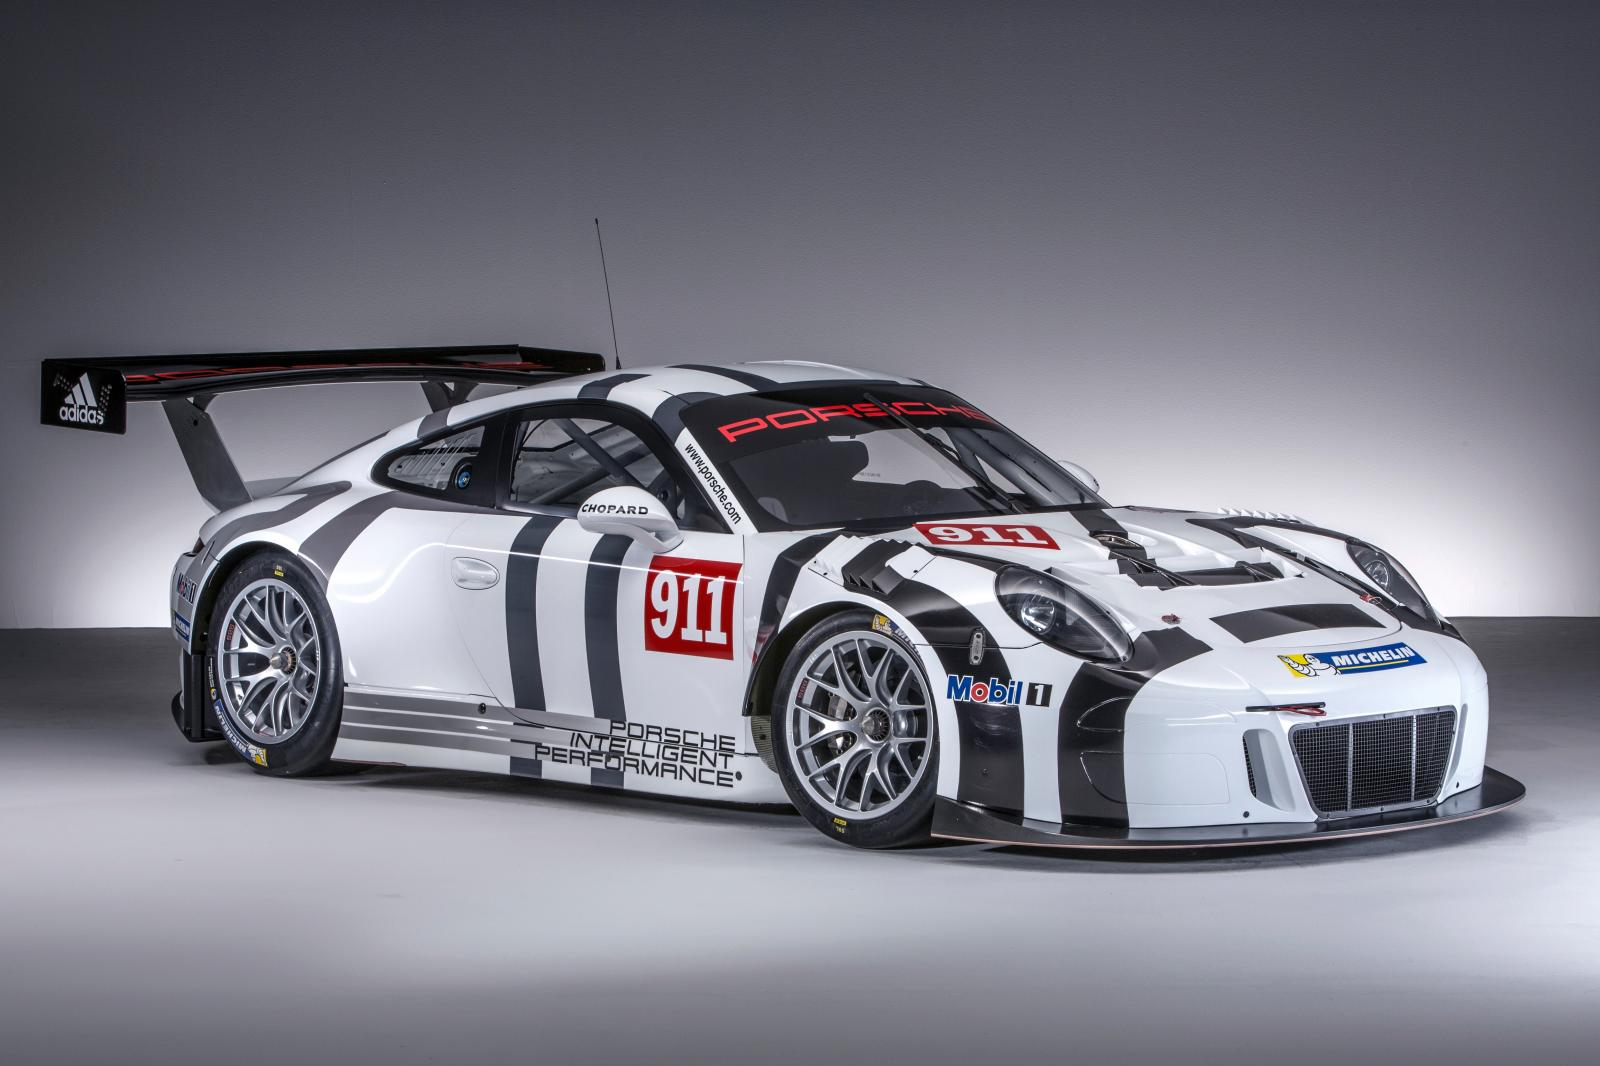 2016 Porsche 911 Gt3 R Is The Awesome Racing Version Of The 911 Gt3 Rs Costs Half A Million Euro 95486 together with The Mercedes Amg Gt R Yours For 143245 in addition Mr Car Design Renault Megane Rs Trophy Mit Kw Fahrwerk 89357 also New Vw Scirocco Not Before 2017 70077 also Vwfsg501. on mercedes vw class